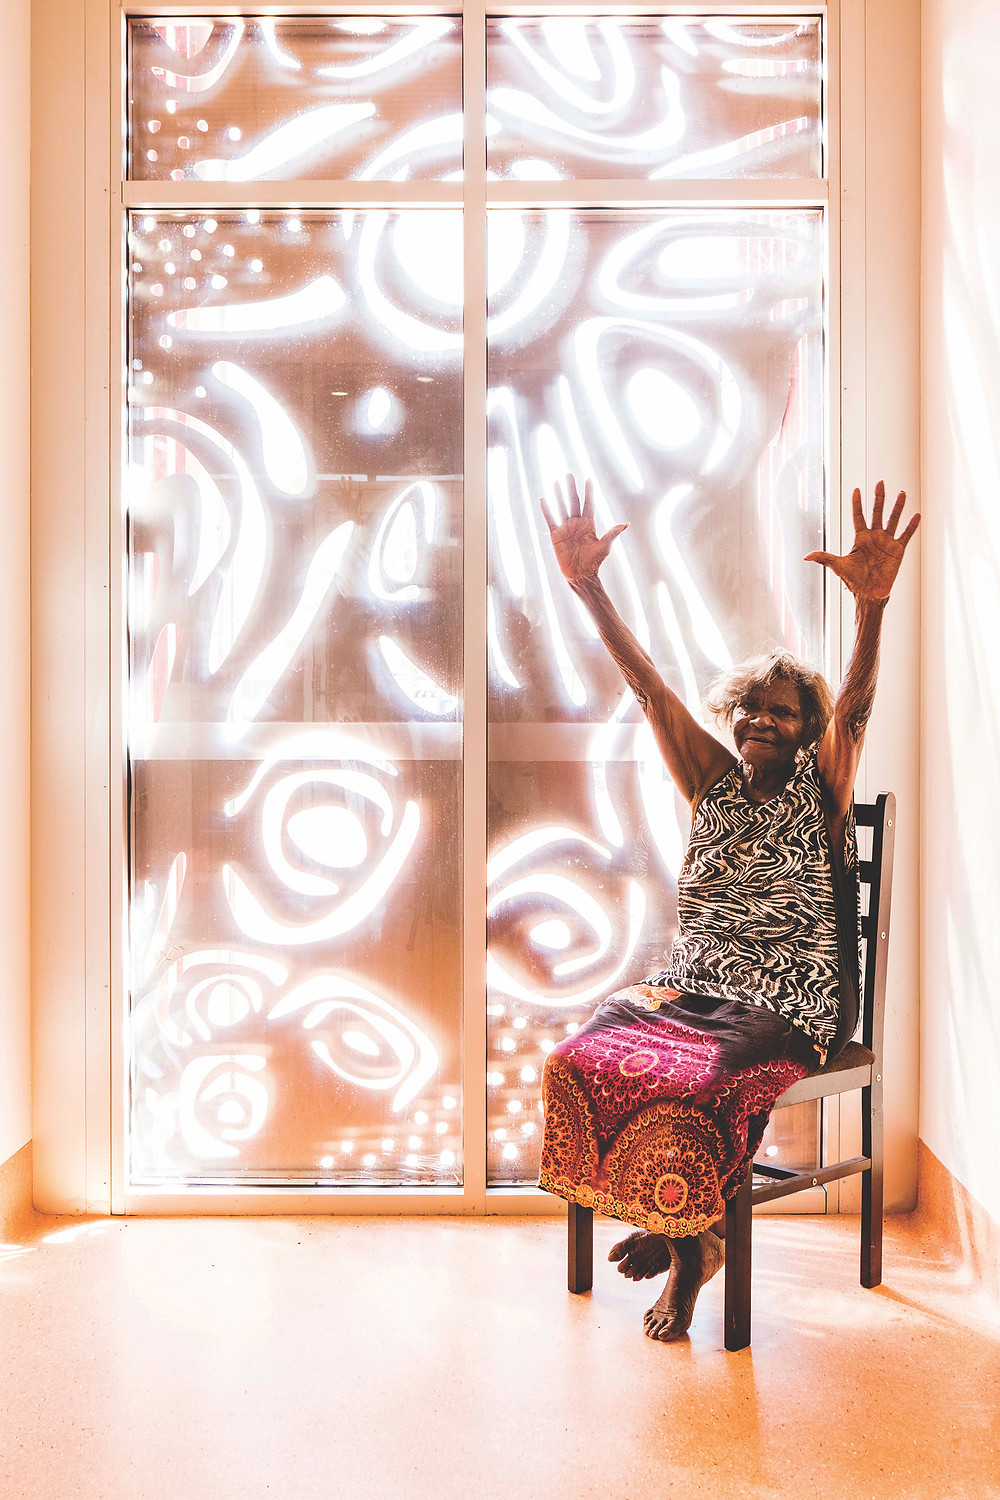 Aboriginal woman in chair with hands up in front of window art. Punmu artist Jakayu Biljabu sits in front of the screen she designed for the Punmu Aboriginal Health Clinic in the Western Australian desert. The clinic was designed by Kaunitz Yeung Architecture in deep collaboration with the local community, taking into consideration its unique cultures and customs.